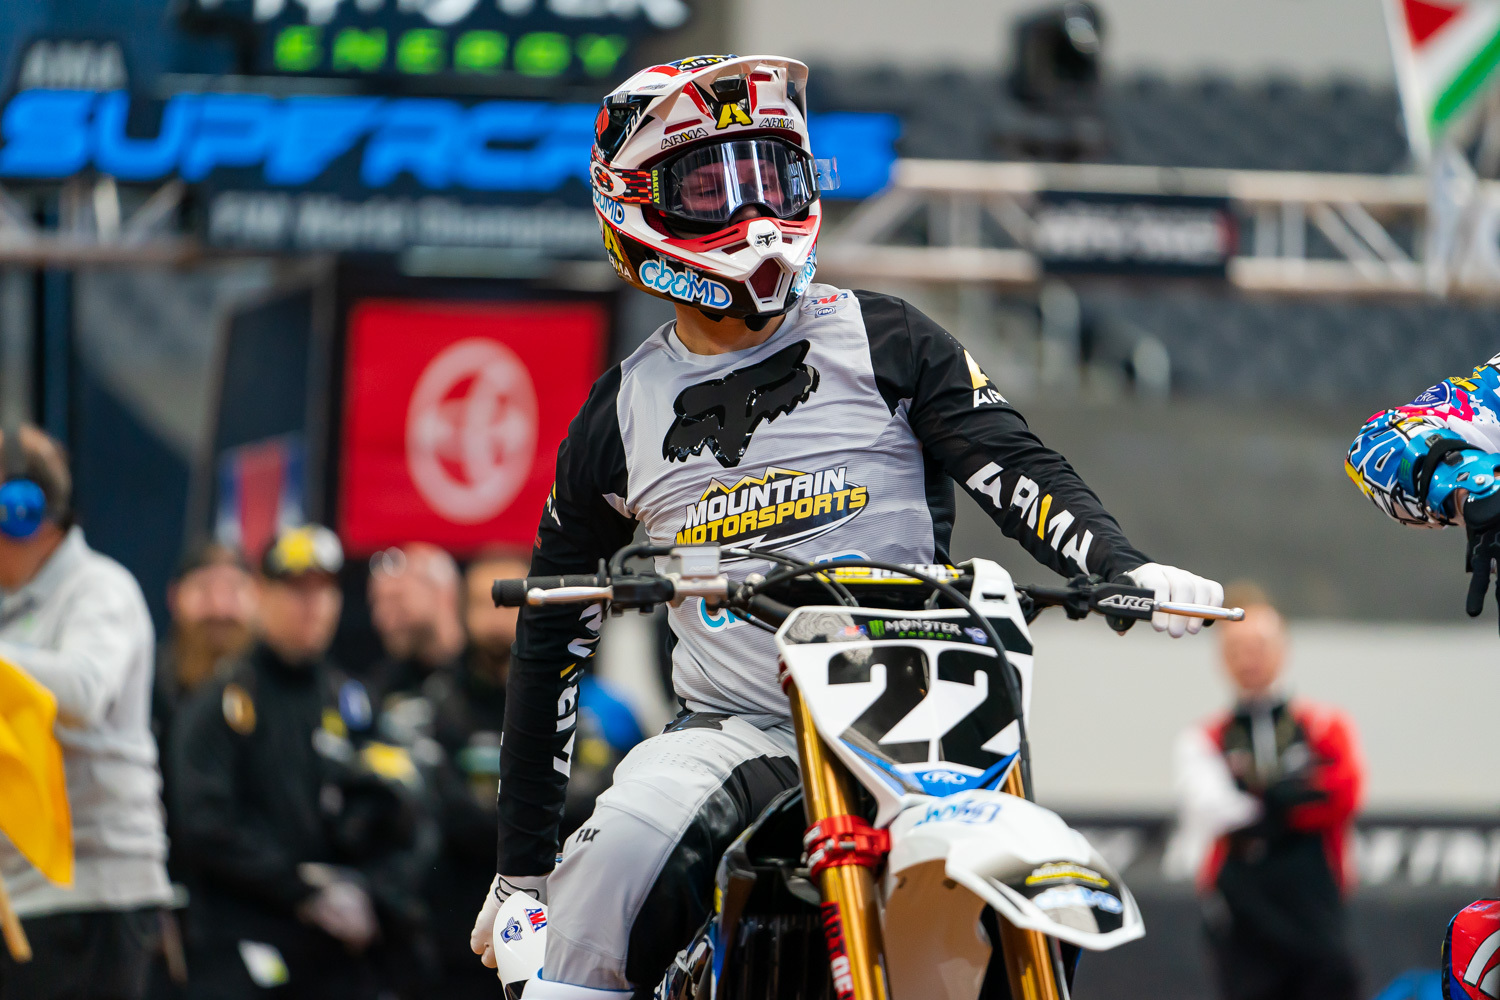 2020-ARLINGTON-SUPERCROSS_KICKSTART_0002